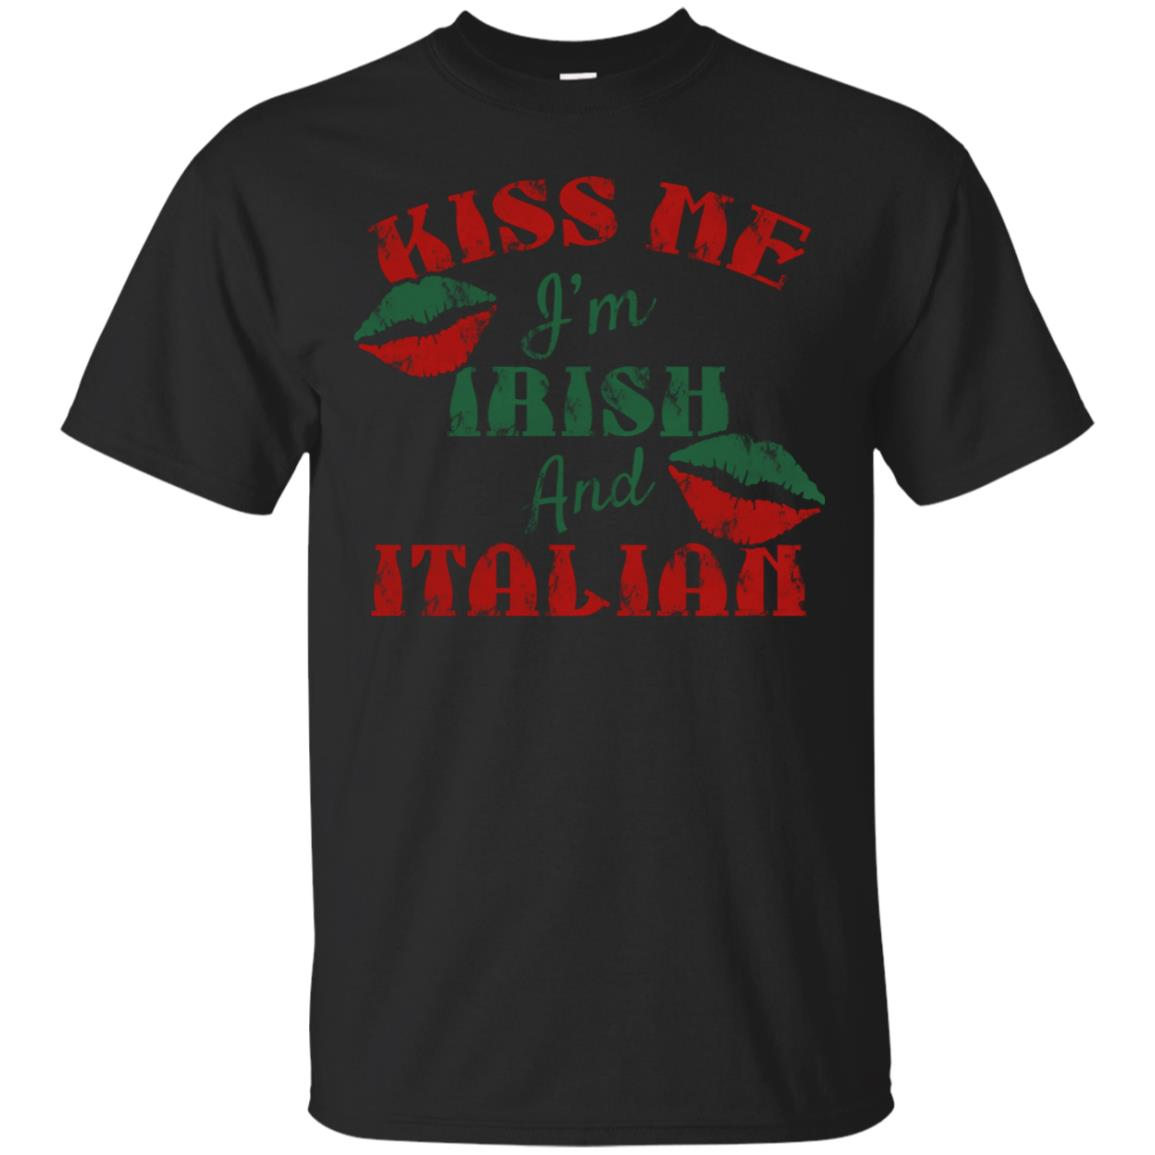 St Patrick's Day Kiss Me I'm Irish and Italian T Shirt 99promocode